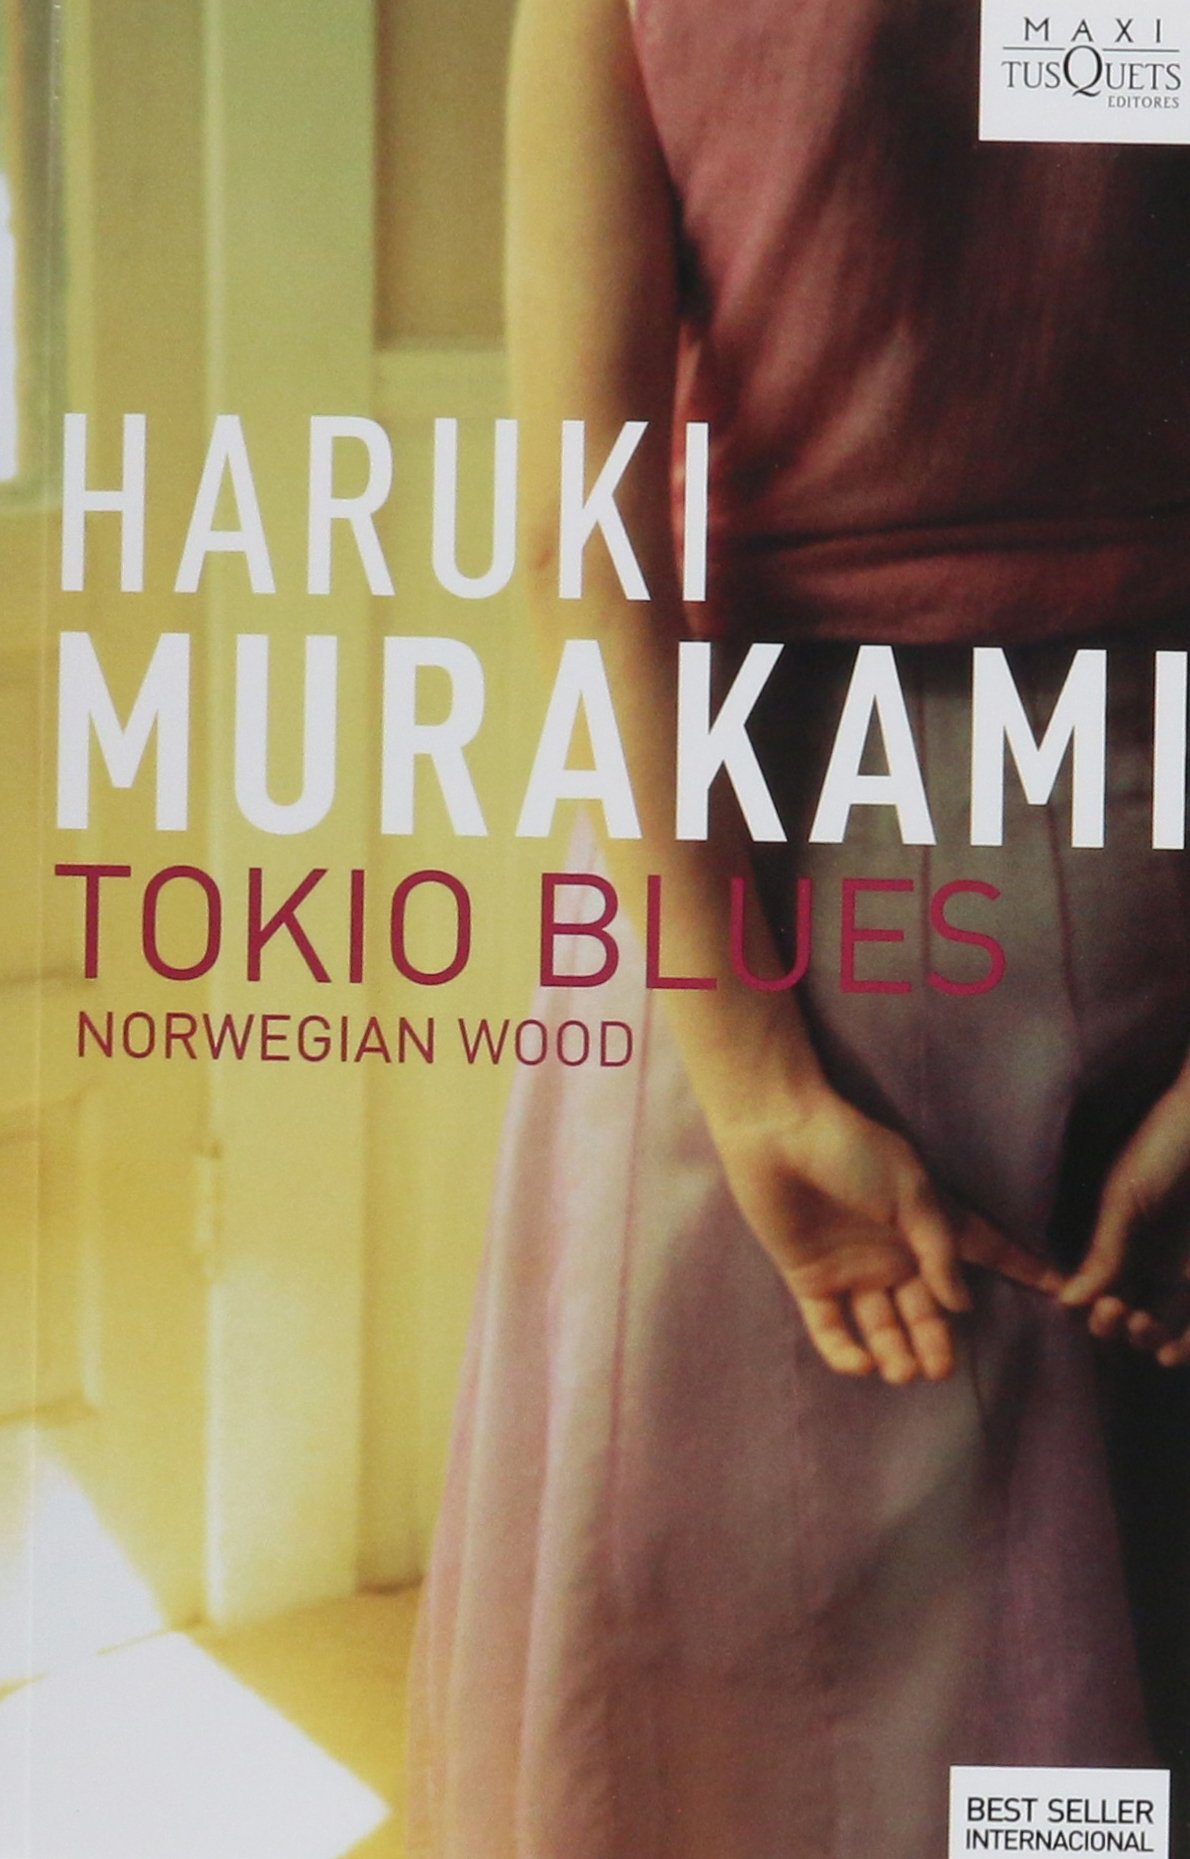 Tokio Blues: Haruki Murakami: Amazon.com.mx: Libros